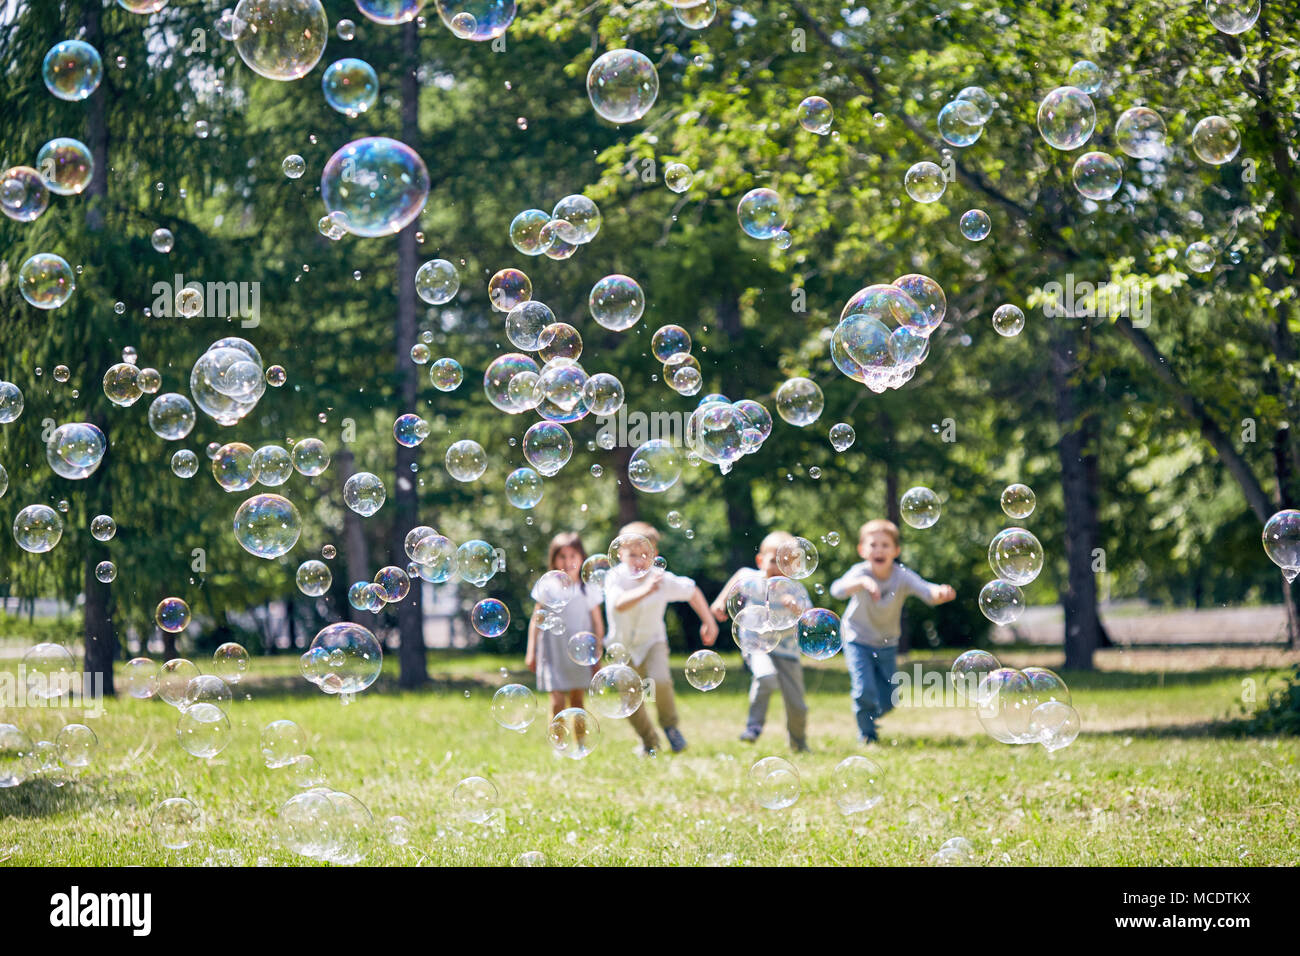 Playing Active Games Outdoors - Stock Image